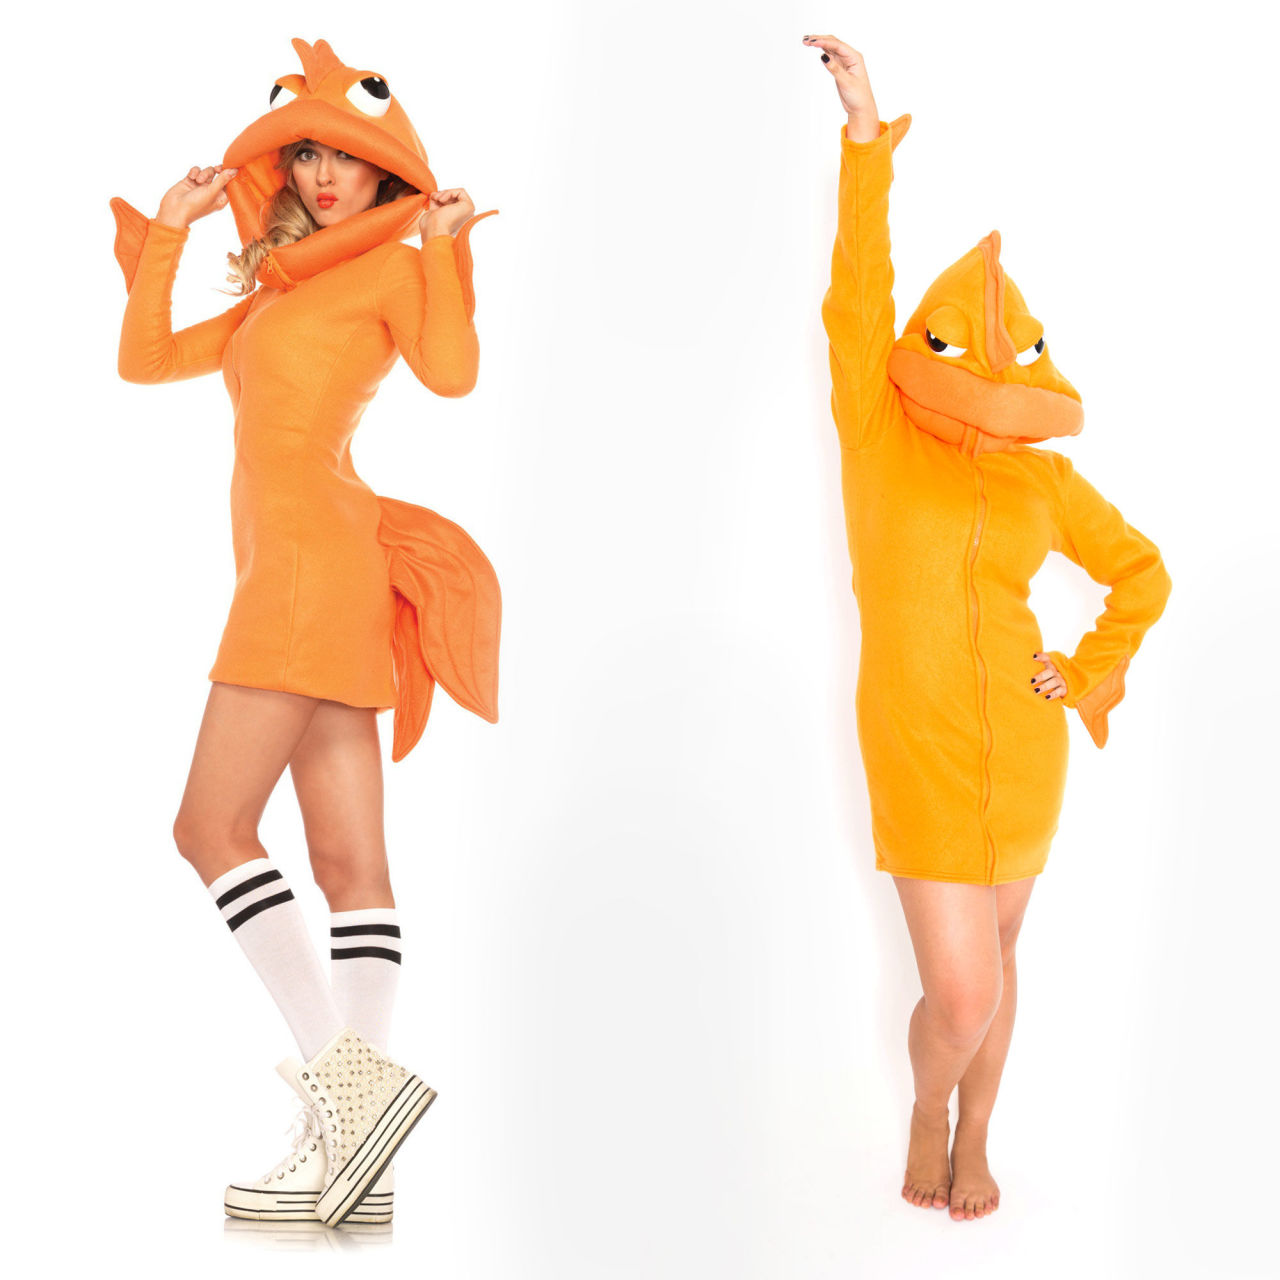 7) Sexy Patrick Star  sc 1 st  SHEmazing! & Sexy Halloween UNMASKED! 14 costumesu2026 as worn by non-models   SHEmazing!